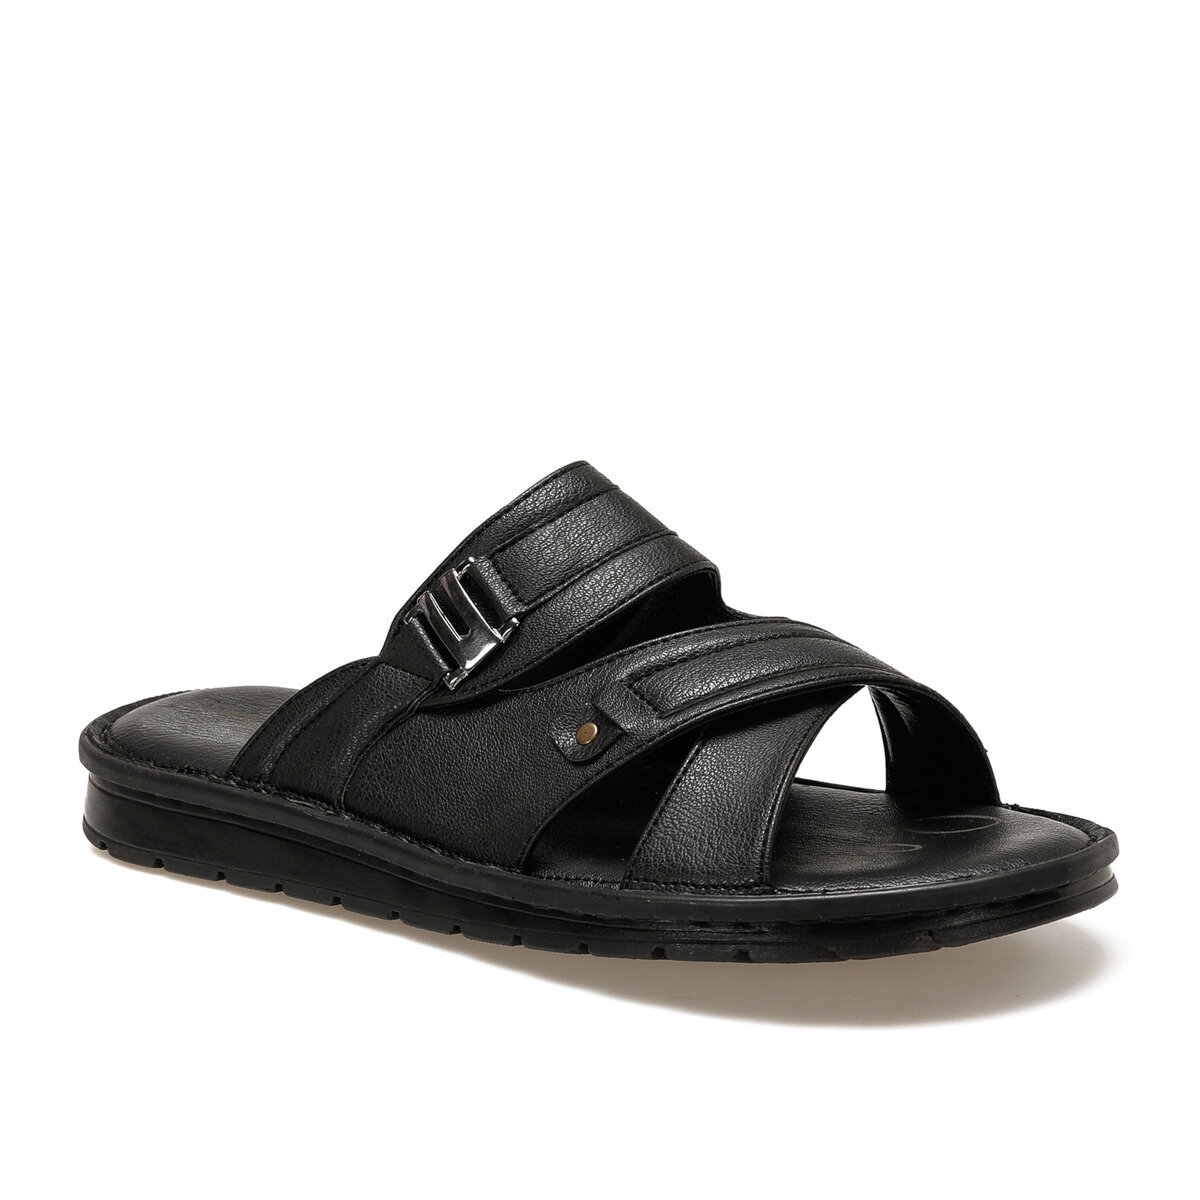 FLO 105 C Black Male Slippers Flexall